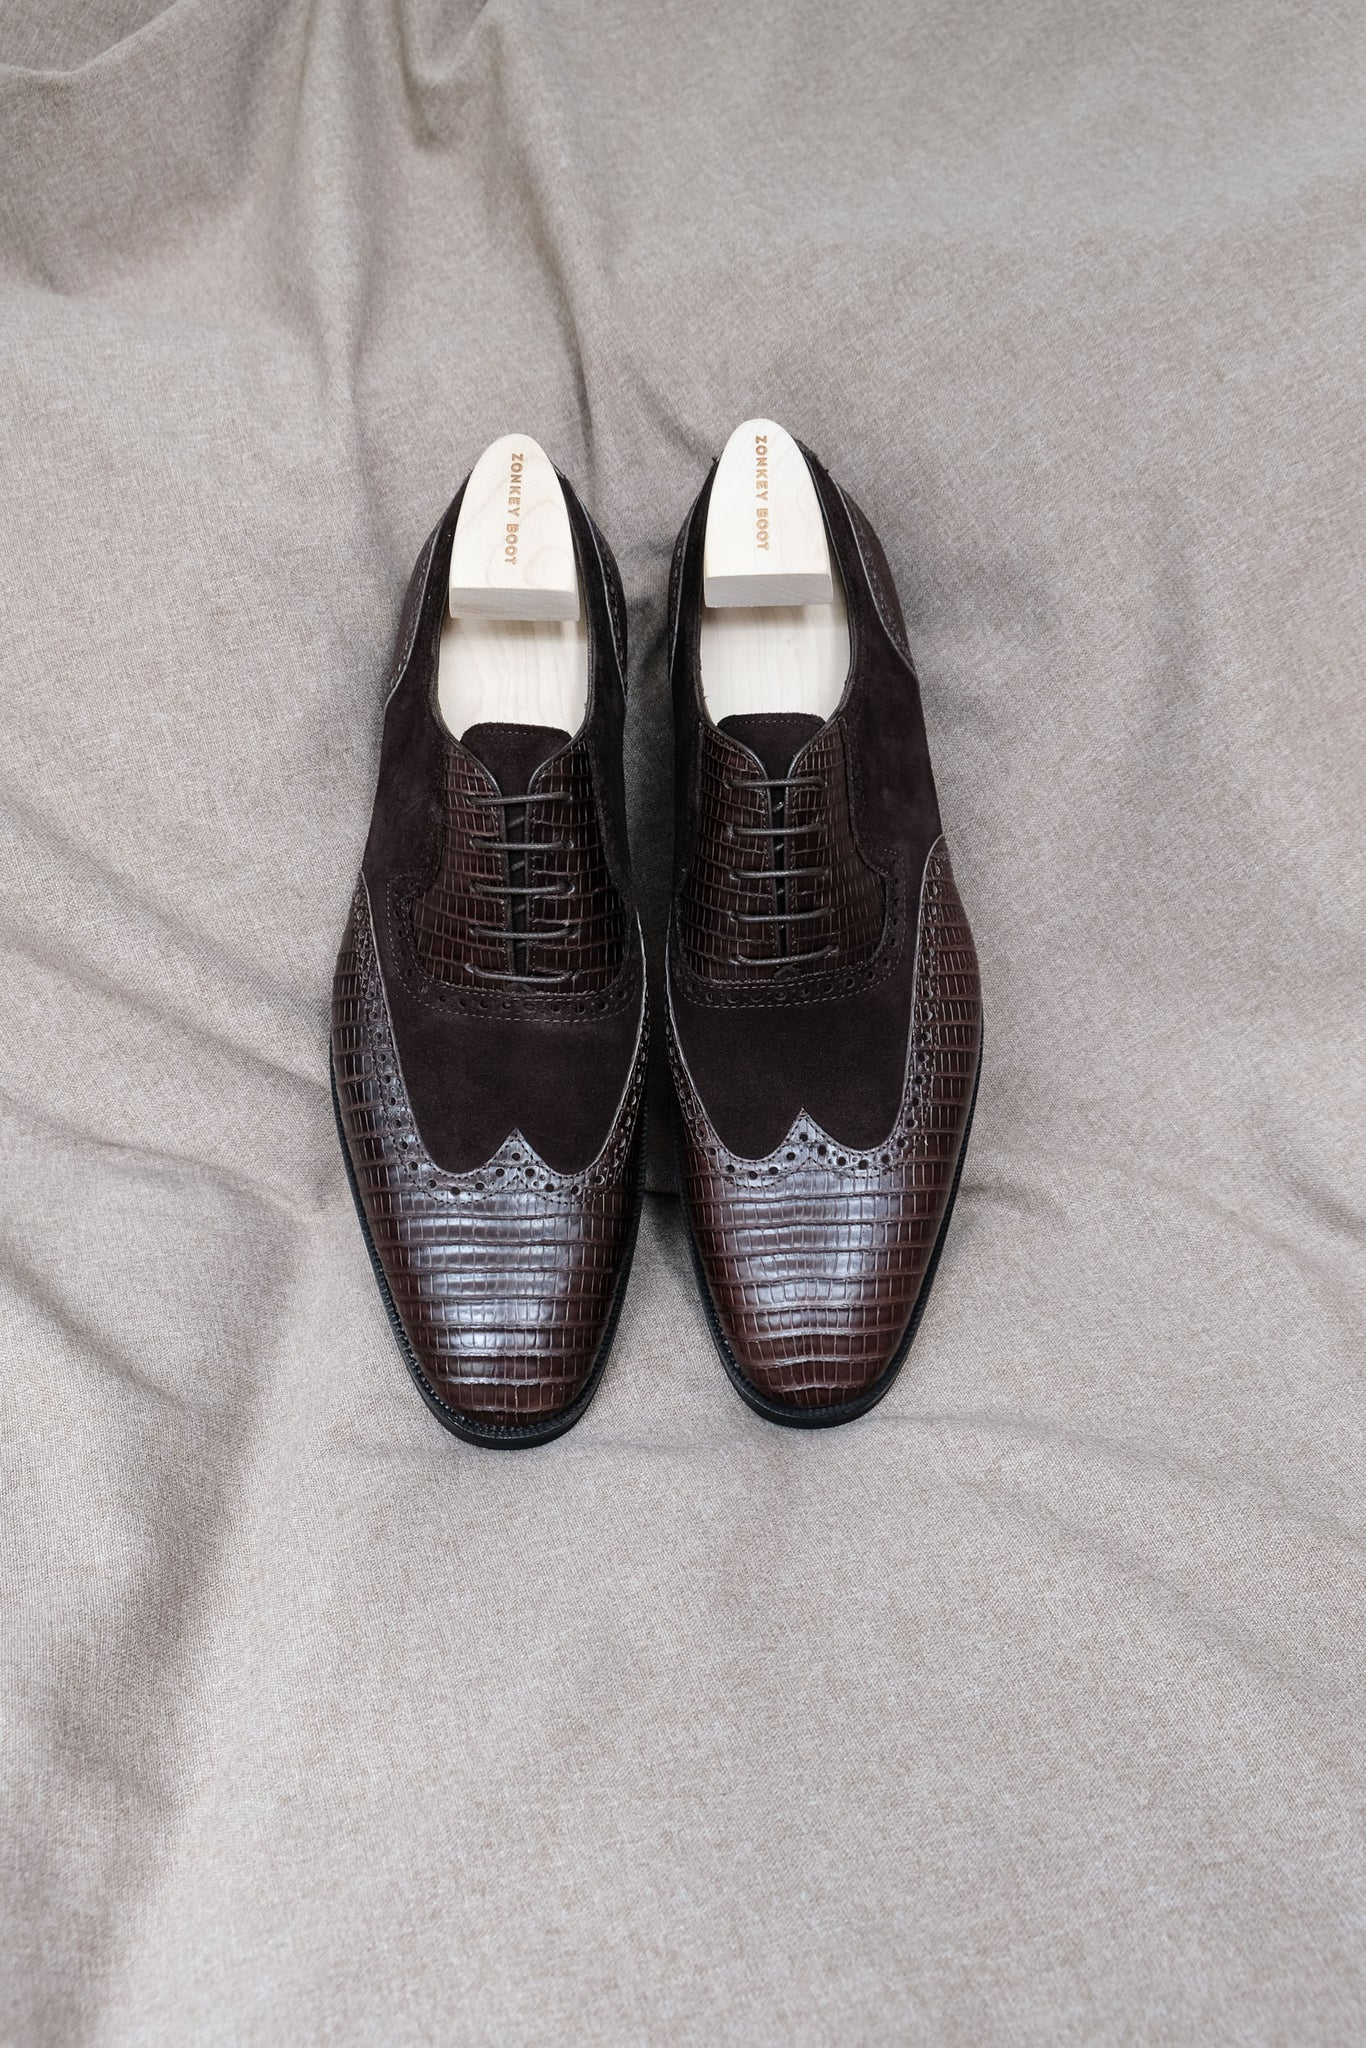 Zonkey Boot hand welted wingtip oxfords from lizard leather and suede